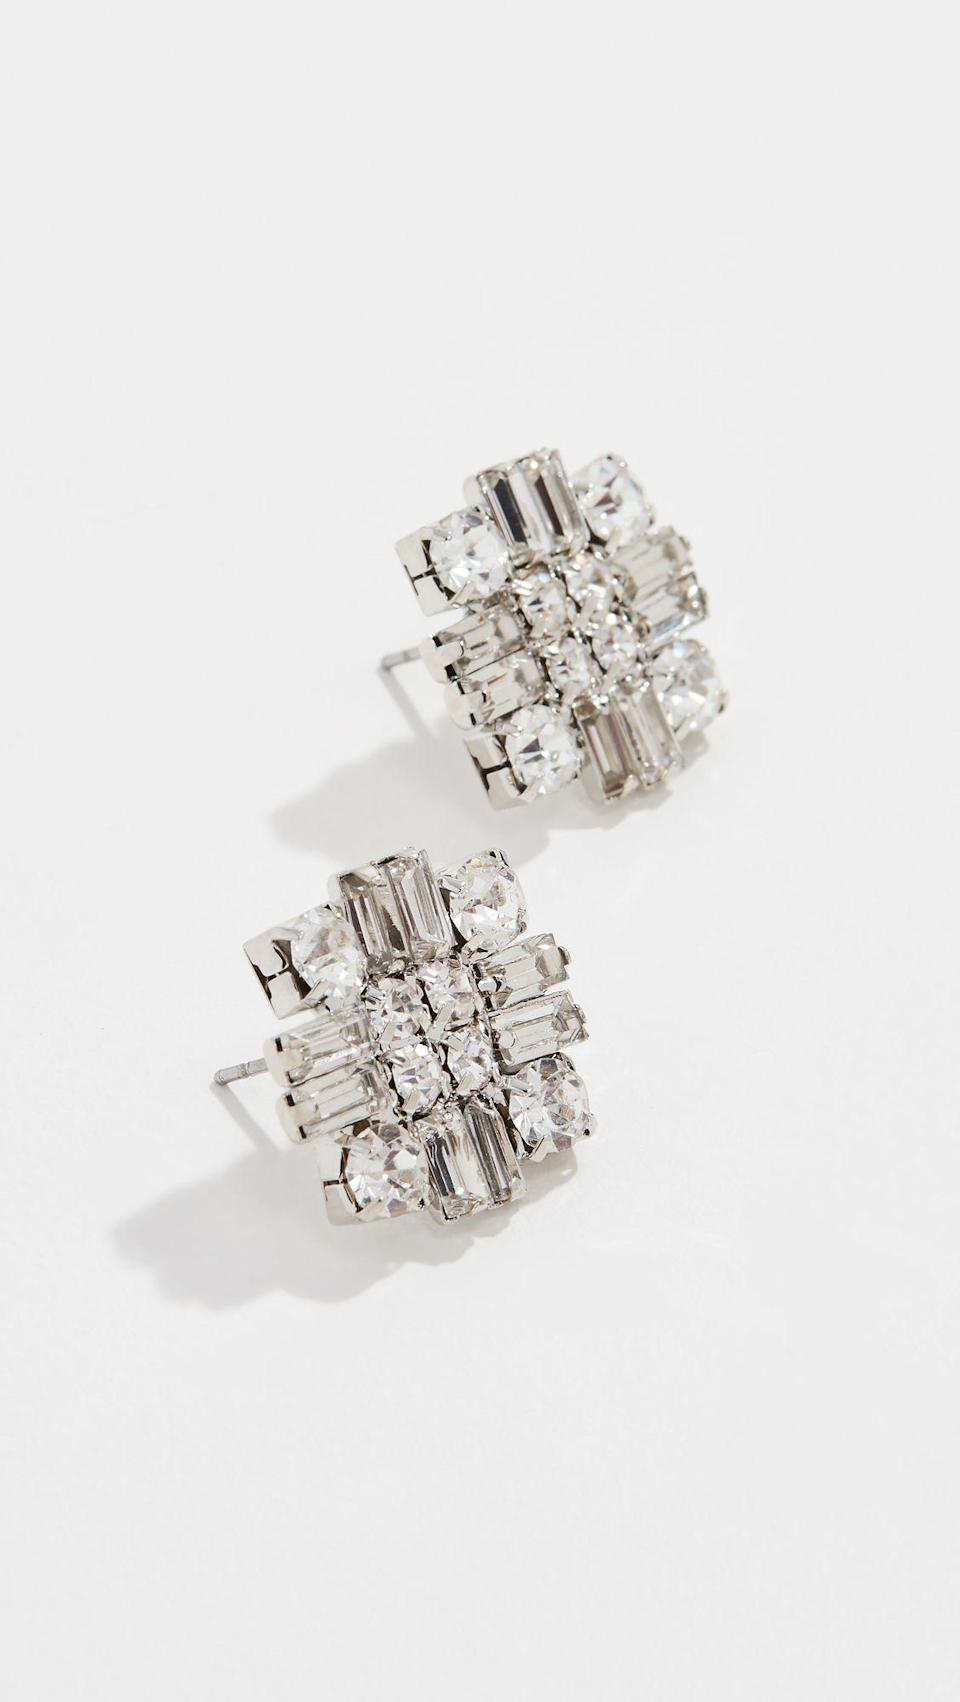 """<p><strong>Stella + Ruby</strong></p><p>shopbop.com</p><p><strong>$40.00</strong></p><p><a href=""""https://go.redirectingat.com?id=74968X1596630&url=https%3A%2F%2Fwww.shopbop.com%2Fstatement-crystal-earrings-stella-ruby%2Fvp%2Fv%3D1%2F1556506098.htm&sref=https%3A%2F%2Fwww.goodhousekeeping.com%2Fbeauty%2Ffashion%2Fg28110225%2Fcute-80s-outfits%2F"""" rel=""""nofollow noopener"""" target=""""_blank"""" data-ylk=""""slk:Shop Now"""" class=""""link rapid-noclick-resp"""">Shop Now</a></p><p>Remember the <a href=""""https://www.youtube.com/watch?v=vjVfu8-Wp6s"""" rel=""""nofollow noopener"""" target=""""_blank"""" data-ylk=""""slk:White Diamonds commercial"""" class=""""link rapid-noclick-resp"""">White Diamonds commercial </a>where Elizabeth Taylor takes her earrings off and says, """"These have always brought me luck?"""" These are definitely channeling that vibe. </p>"""